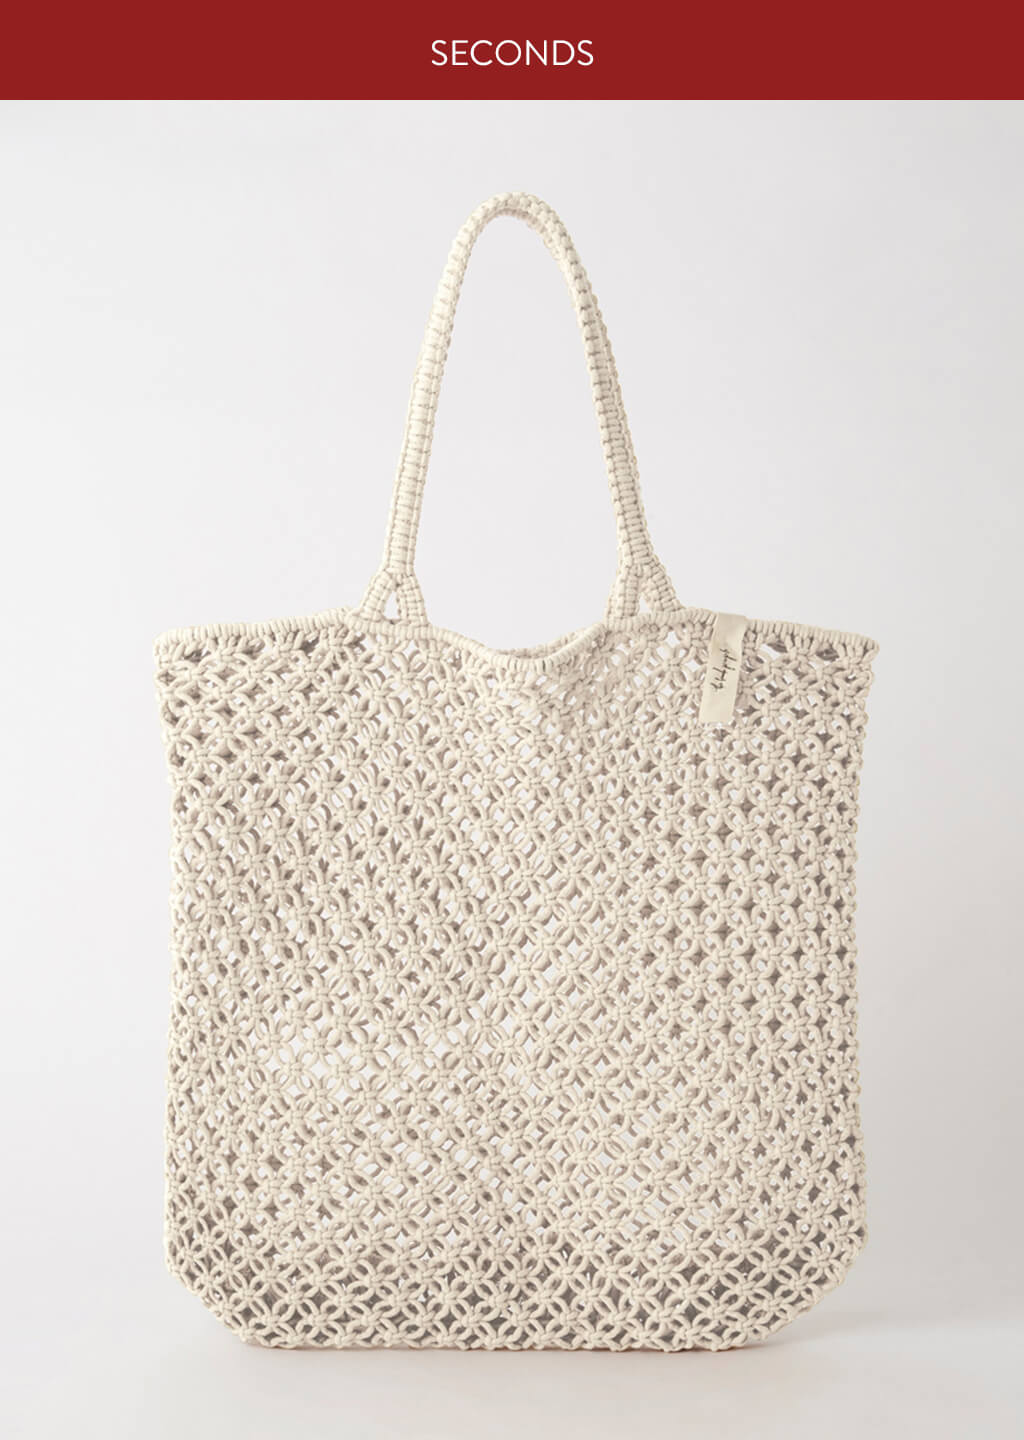 Macrame White (Seconds)